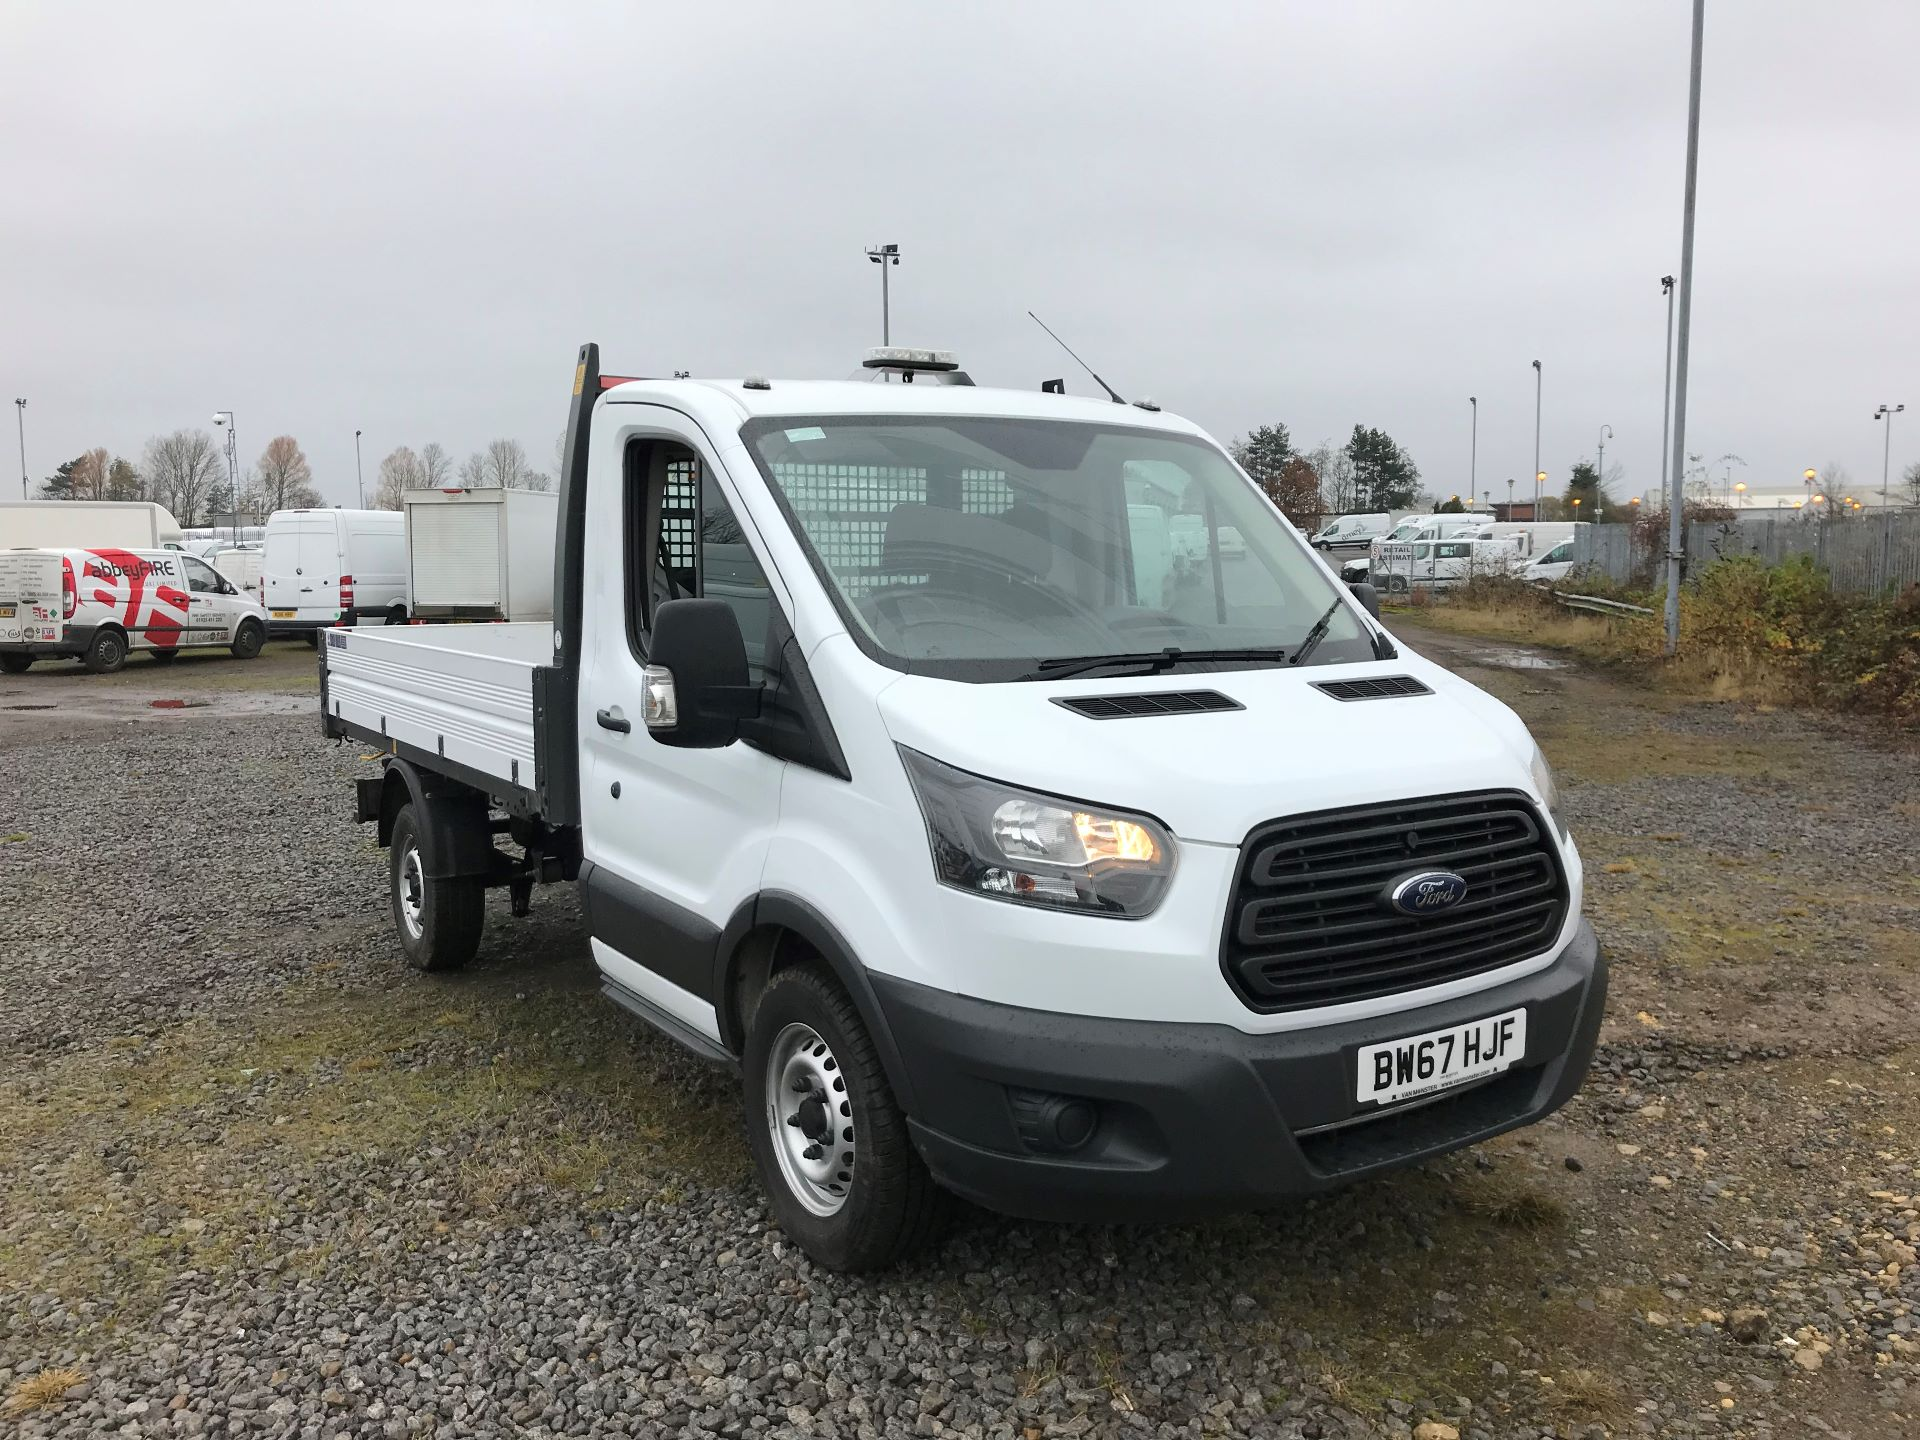 2018 Ford Transit 2.0 Tdci 130Ps One Stop Tipper (BW67HJF)